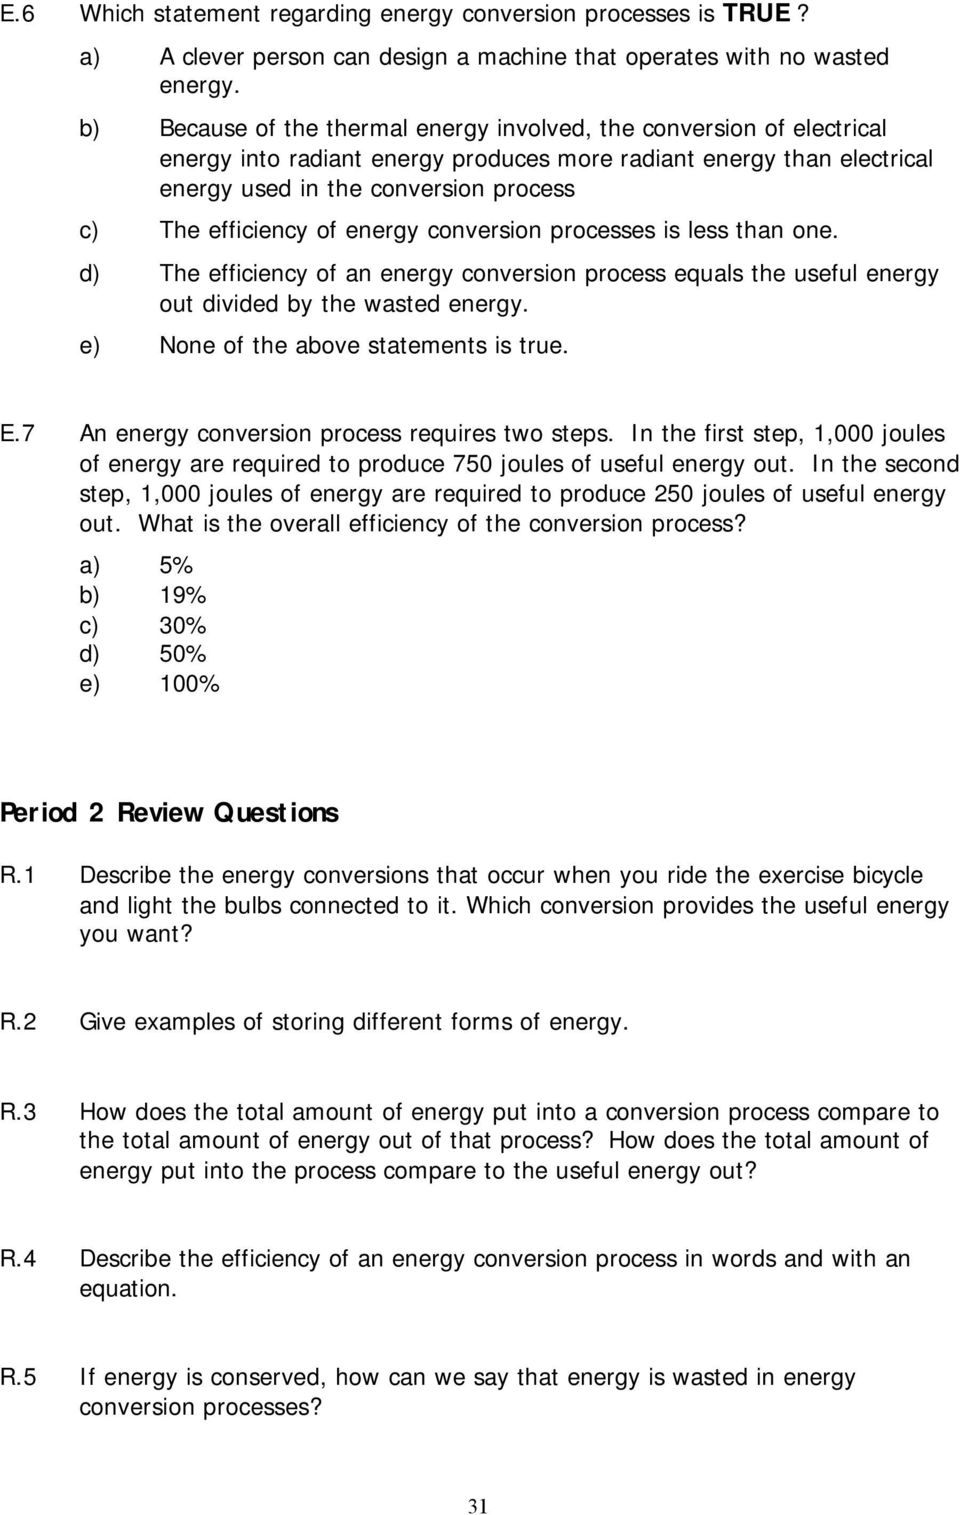 of energy conversion processes is less than one. d) The efficiency of an energy conversion process equals the useful energy out divided by the wasted energy. e) None of the above statements is true.